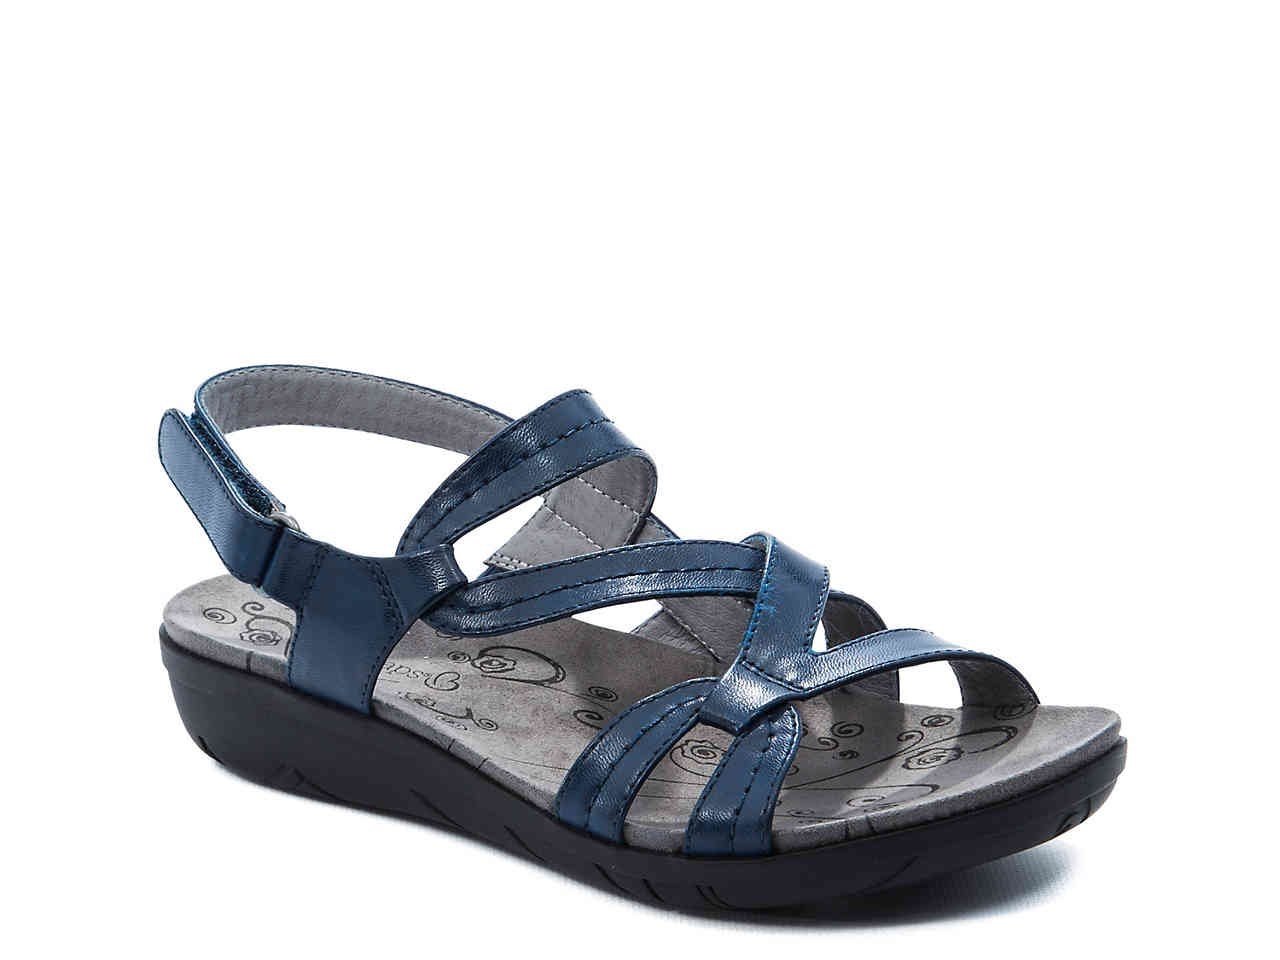 NEW Bare Traps SANDALS Jaycee Comfort Shoes SIZE 11  NAVY BLUE Leather